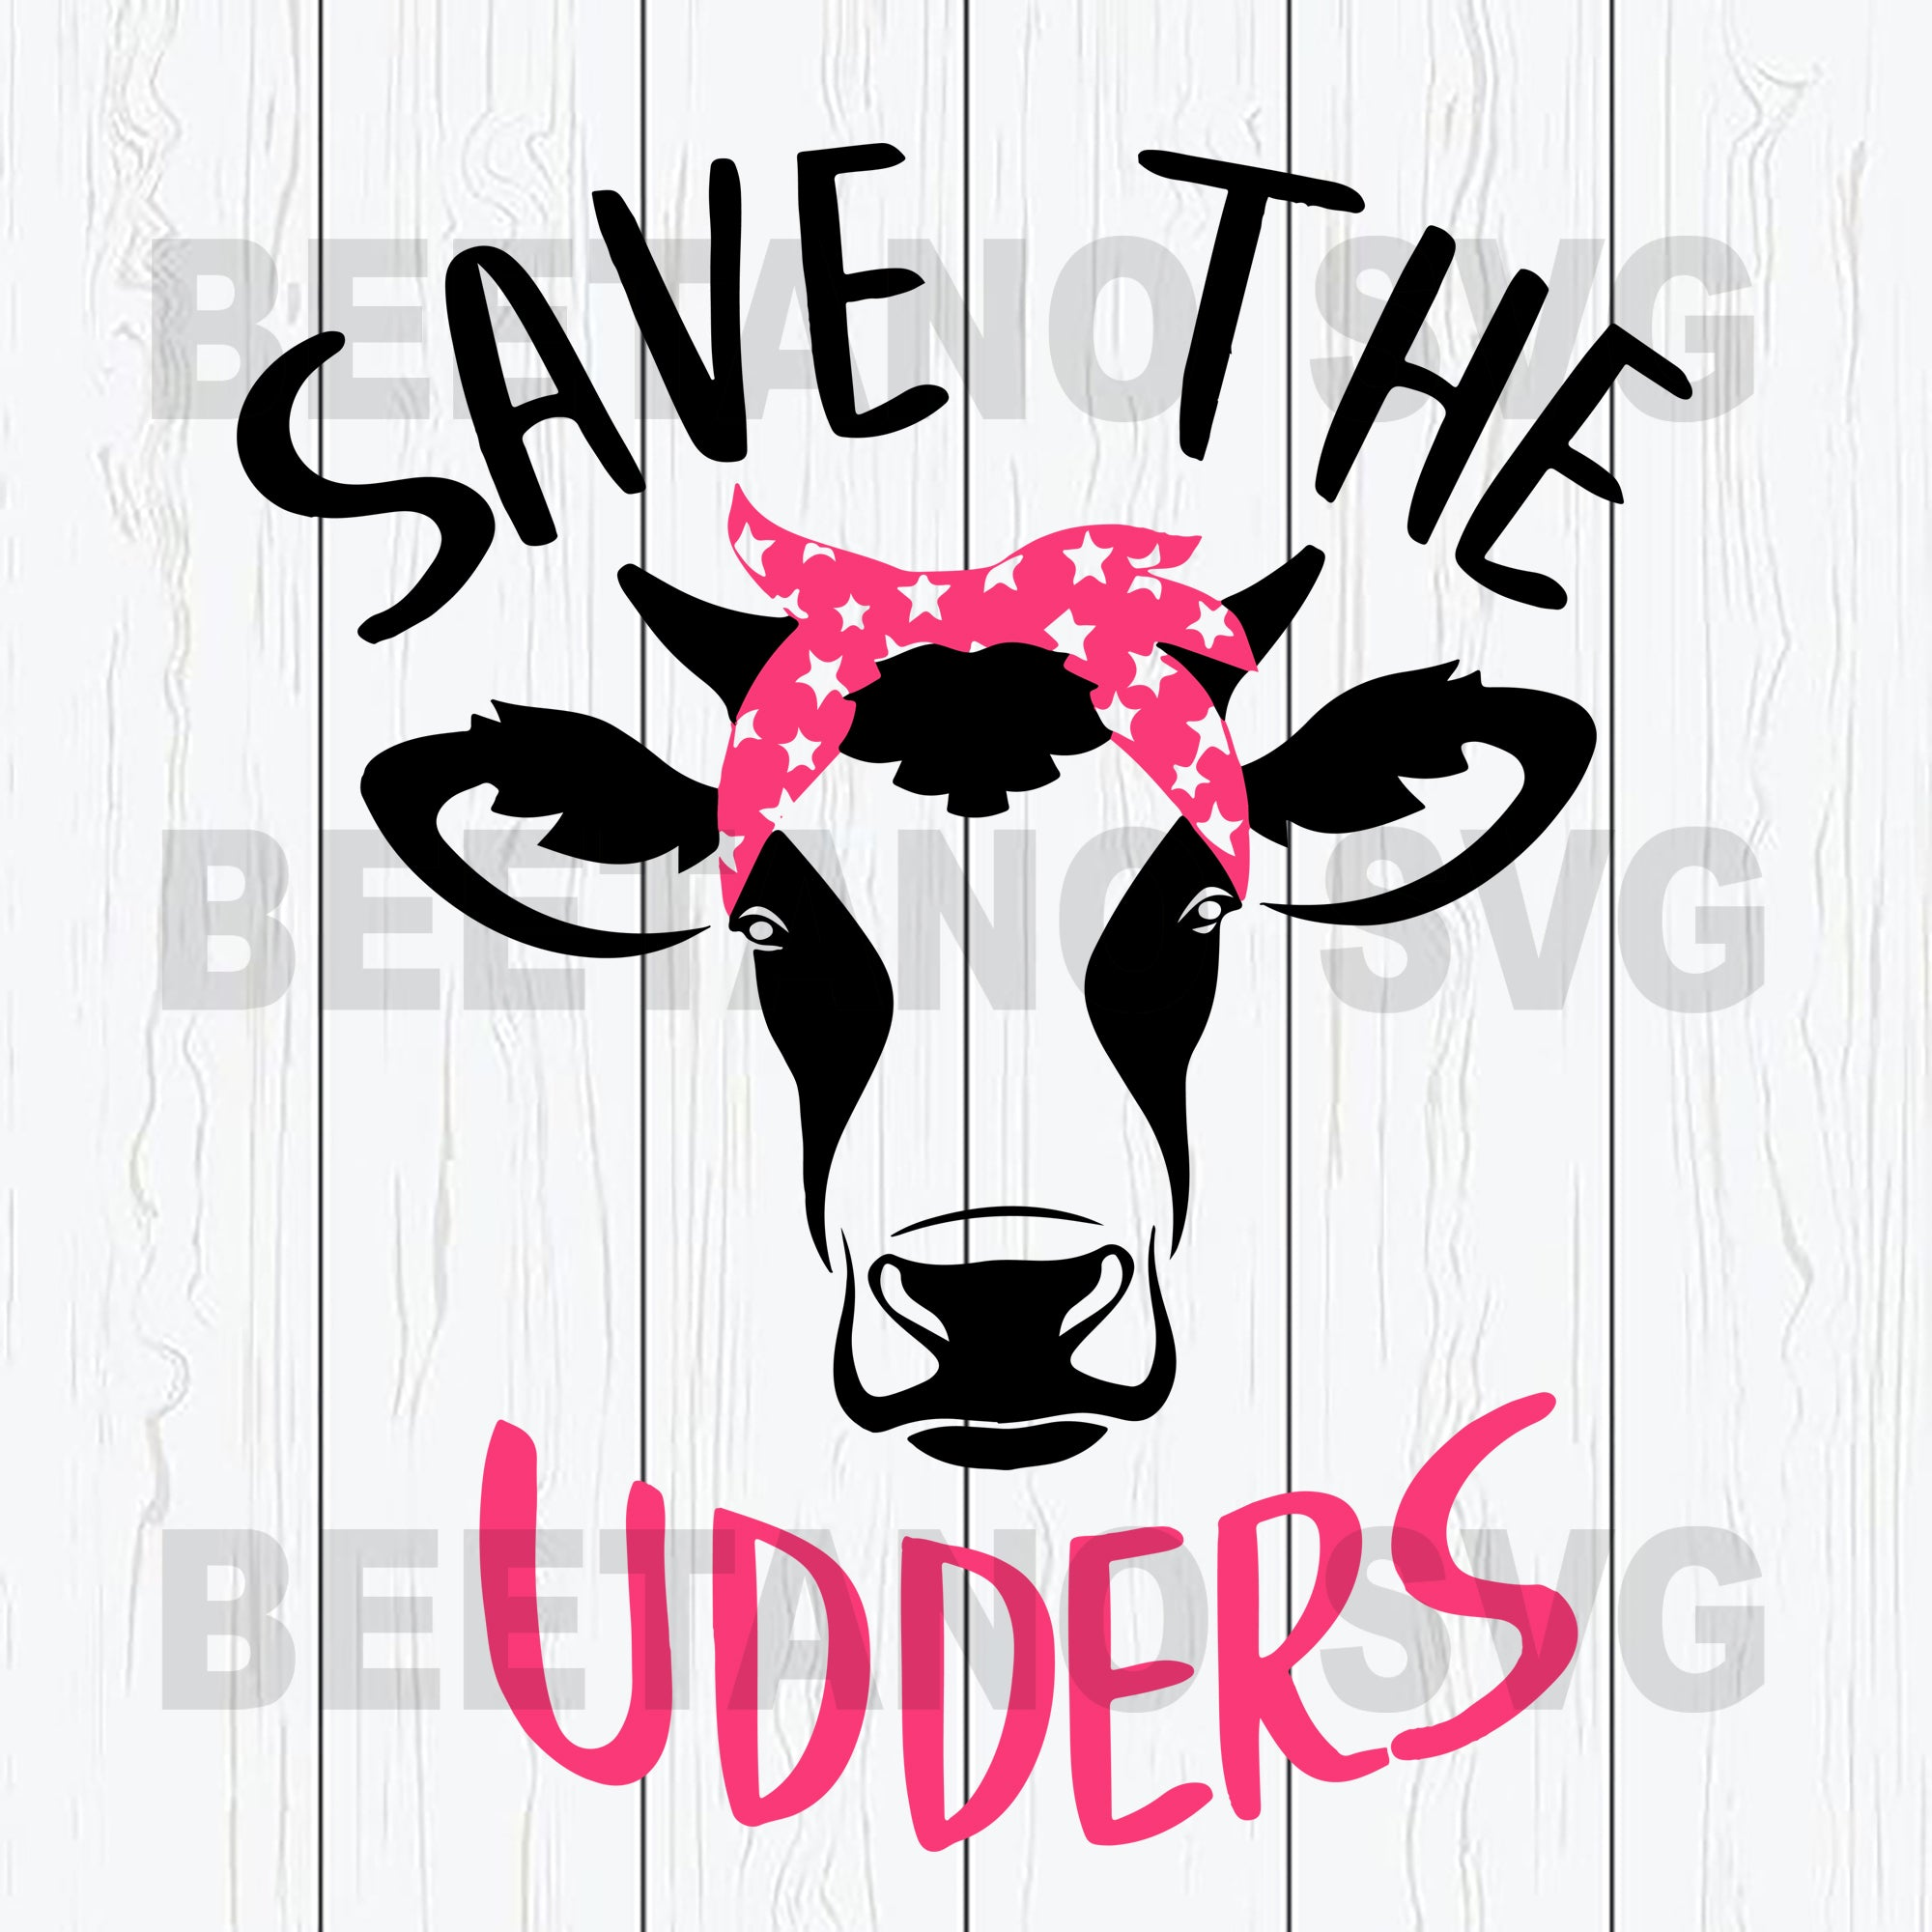 Save The Udders Mama Cow Svg Files, Heifei Svg Files For Instant Download